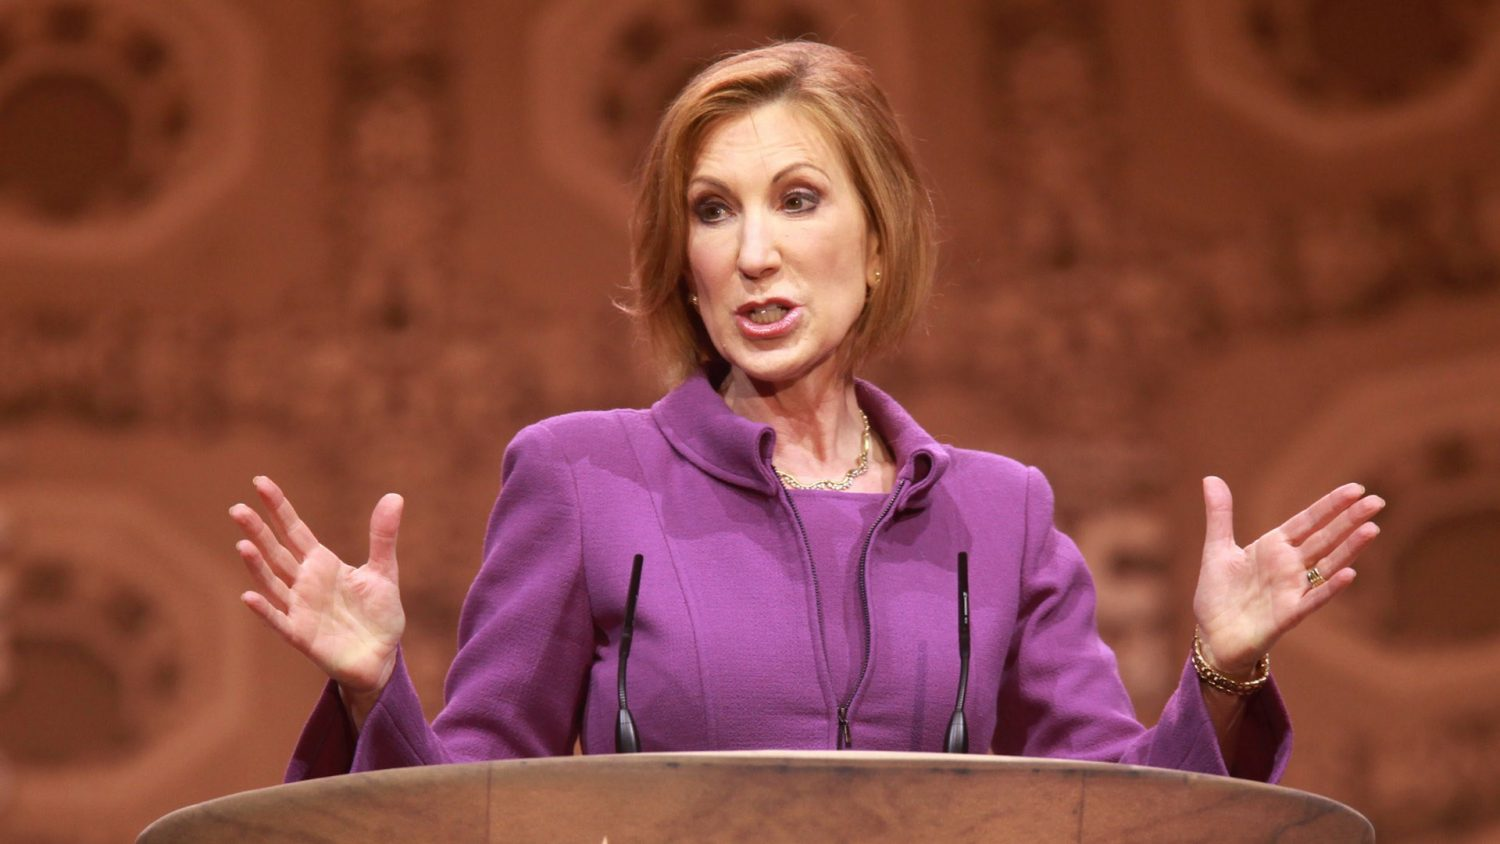 Carly+Fiorina+for+President%3F